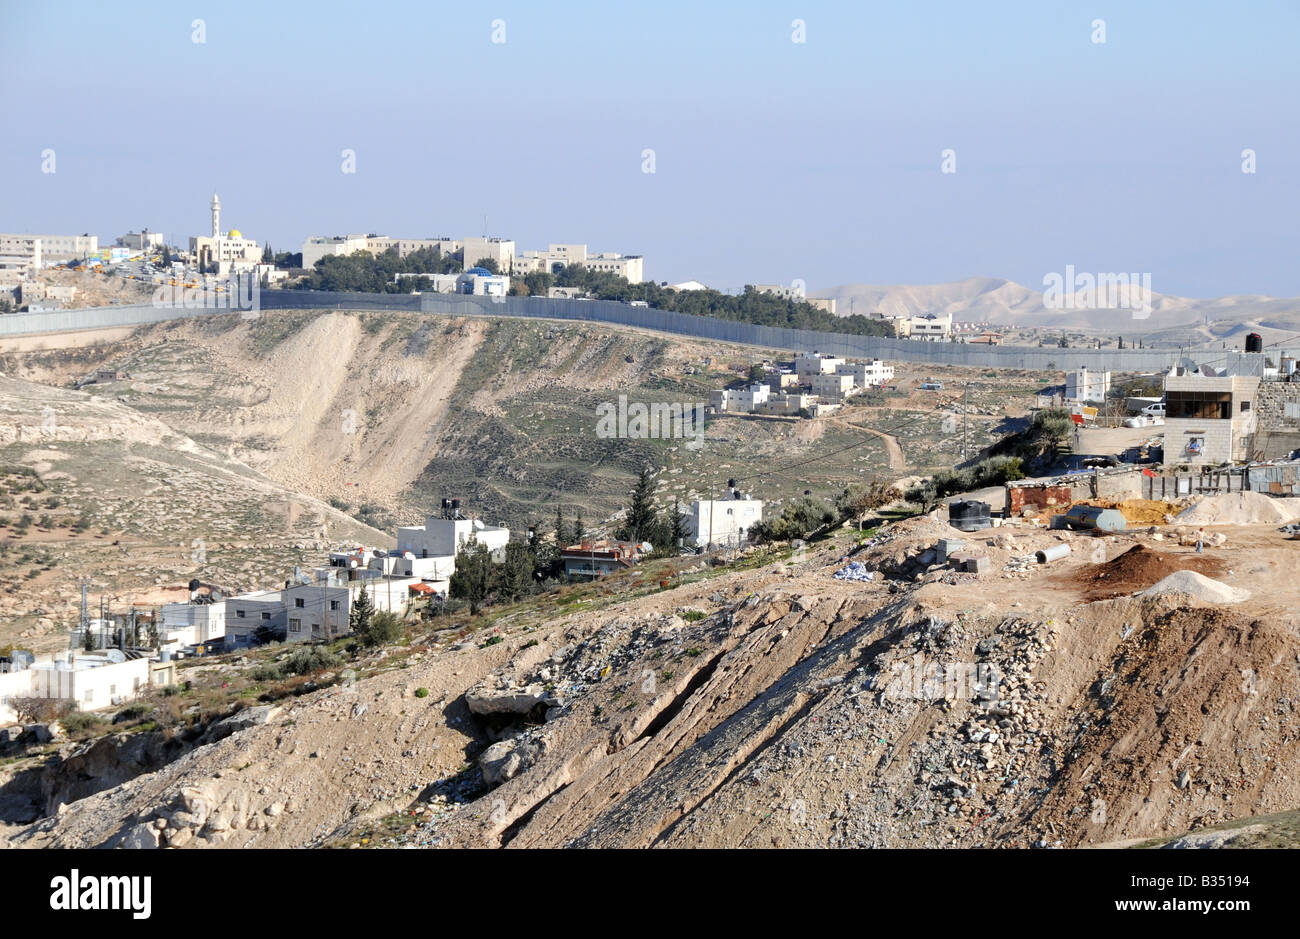 The controversial Separation Wall/Security Barrier built by the Israeli government, pictured in South East Jerusalem. - Stock Image